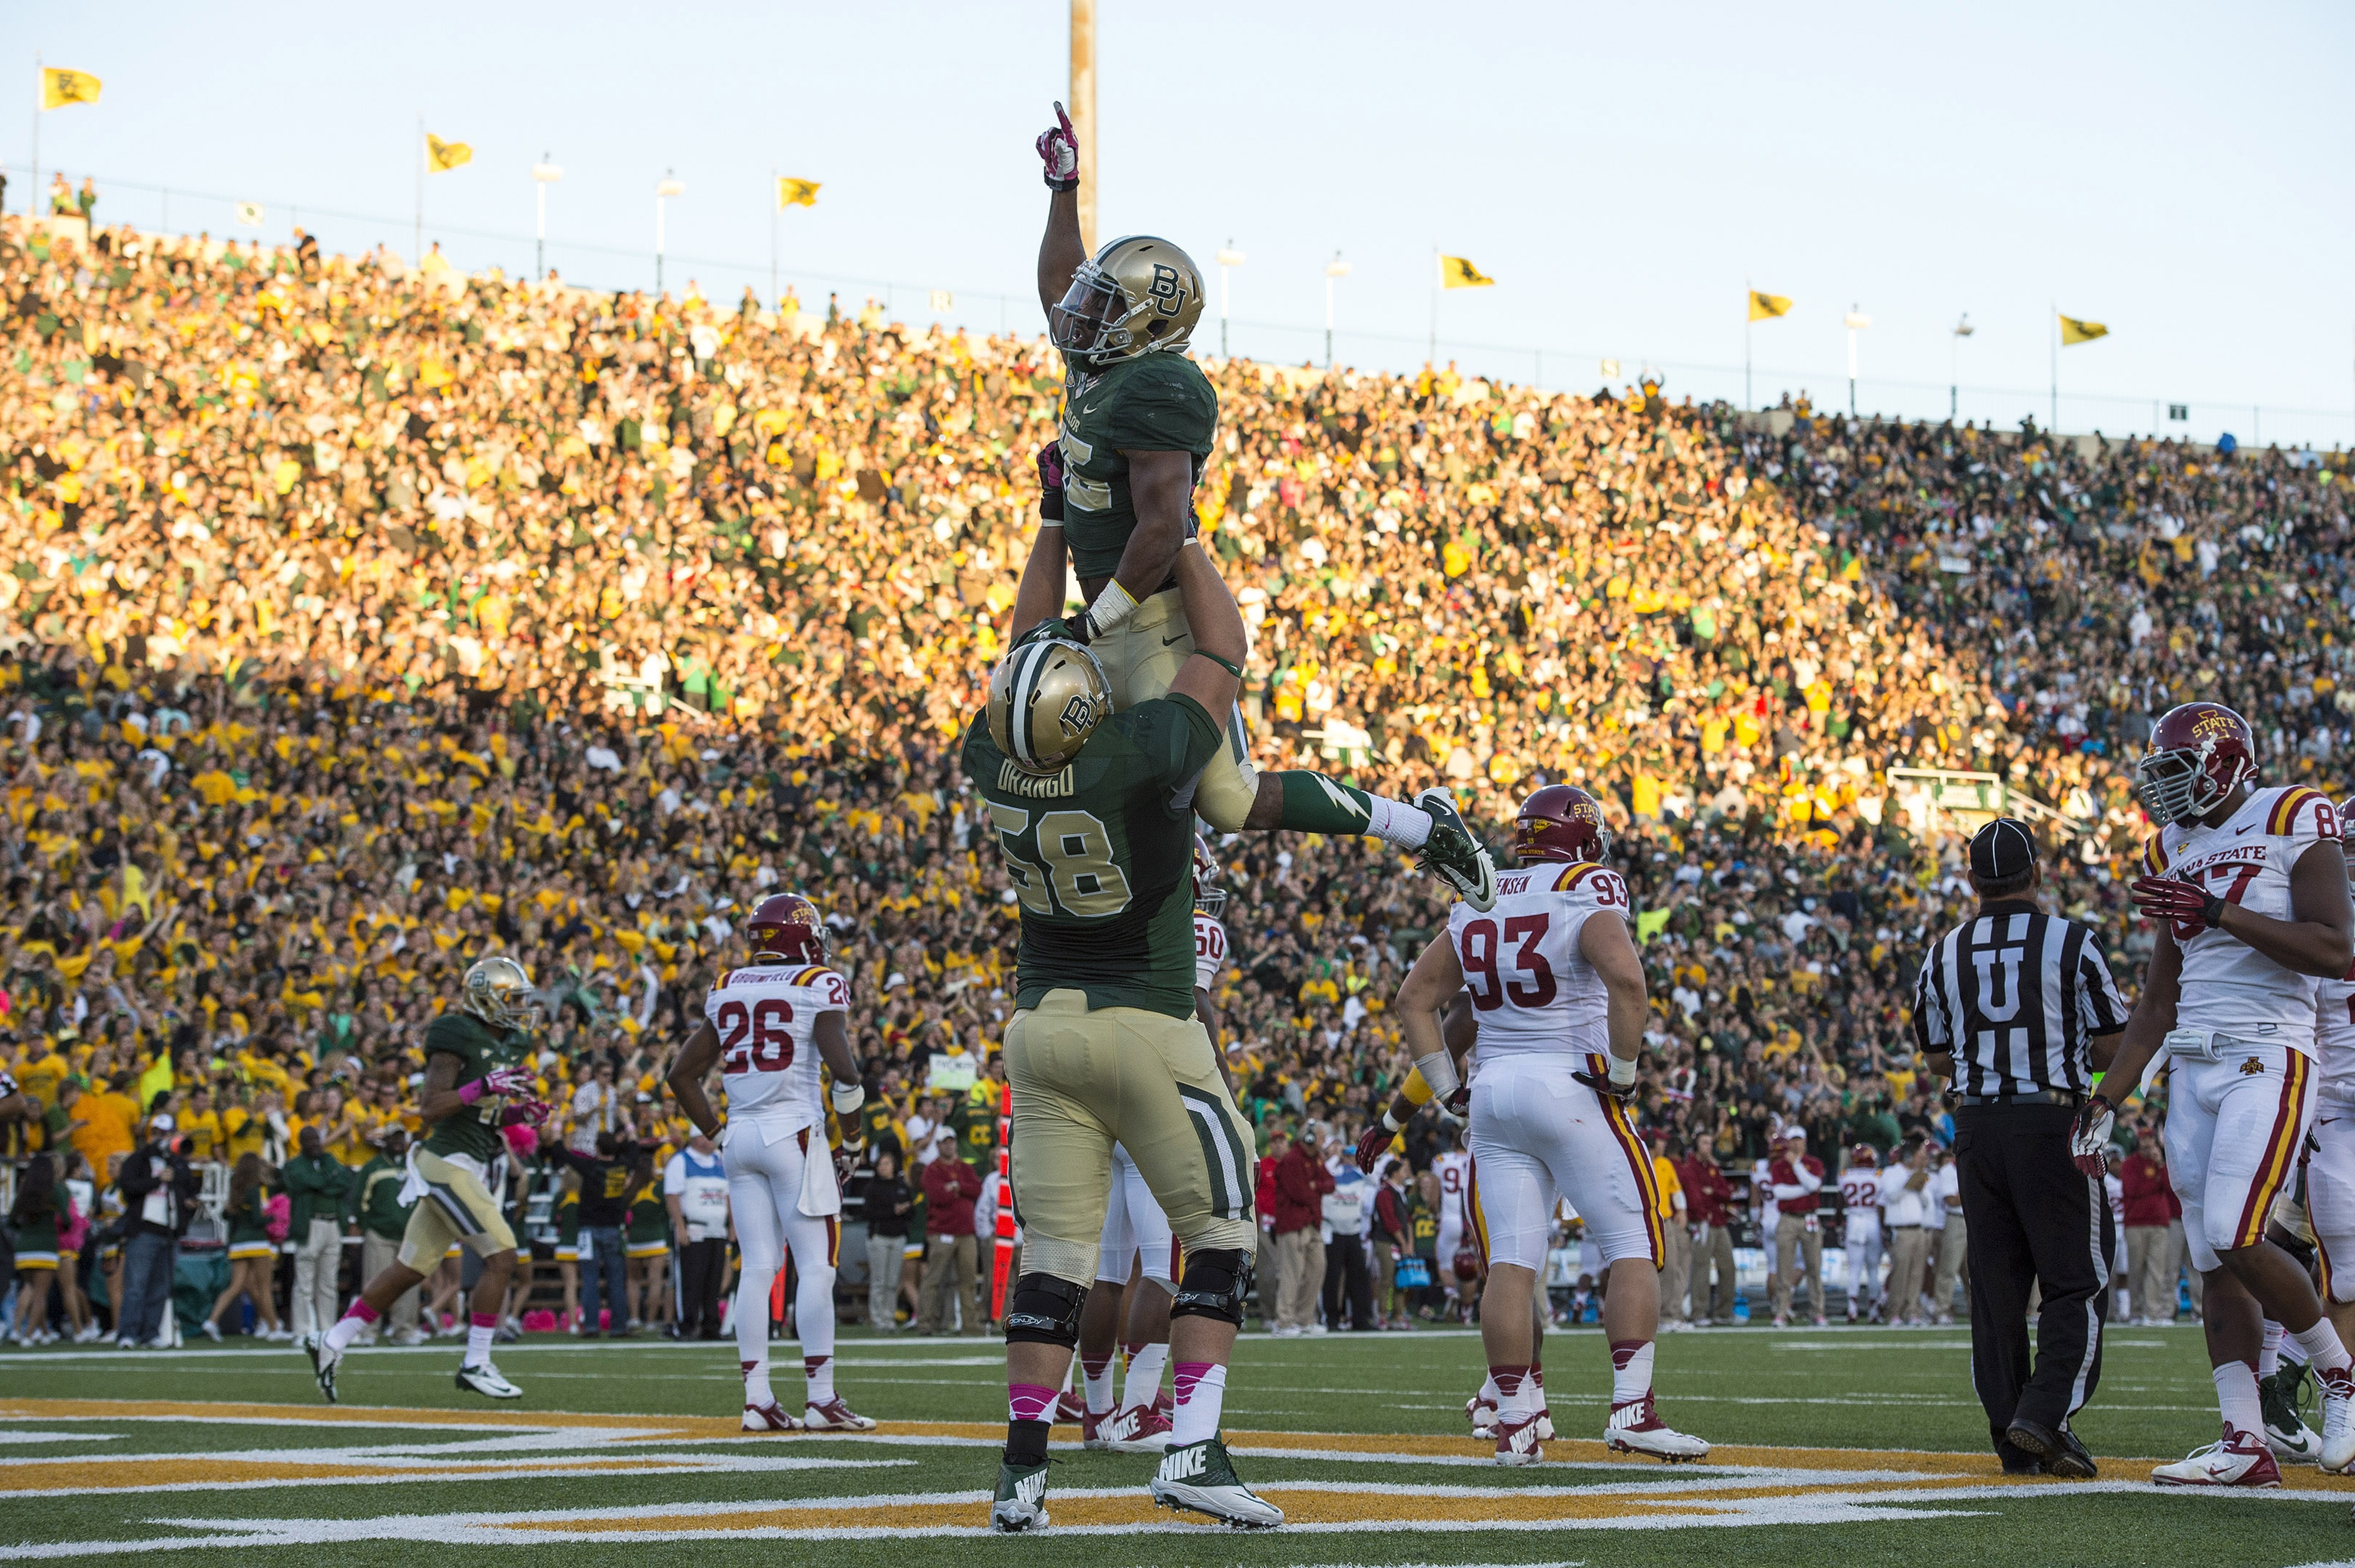 Nearly every picture I have of Drango is him lifting someone in the air after a touchdown.